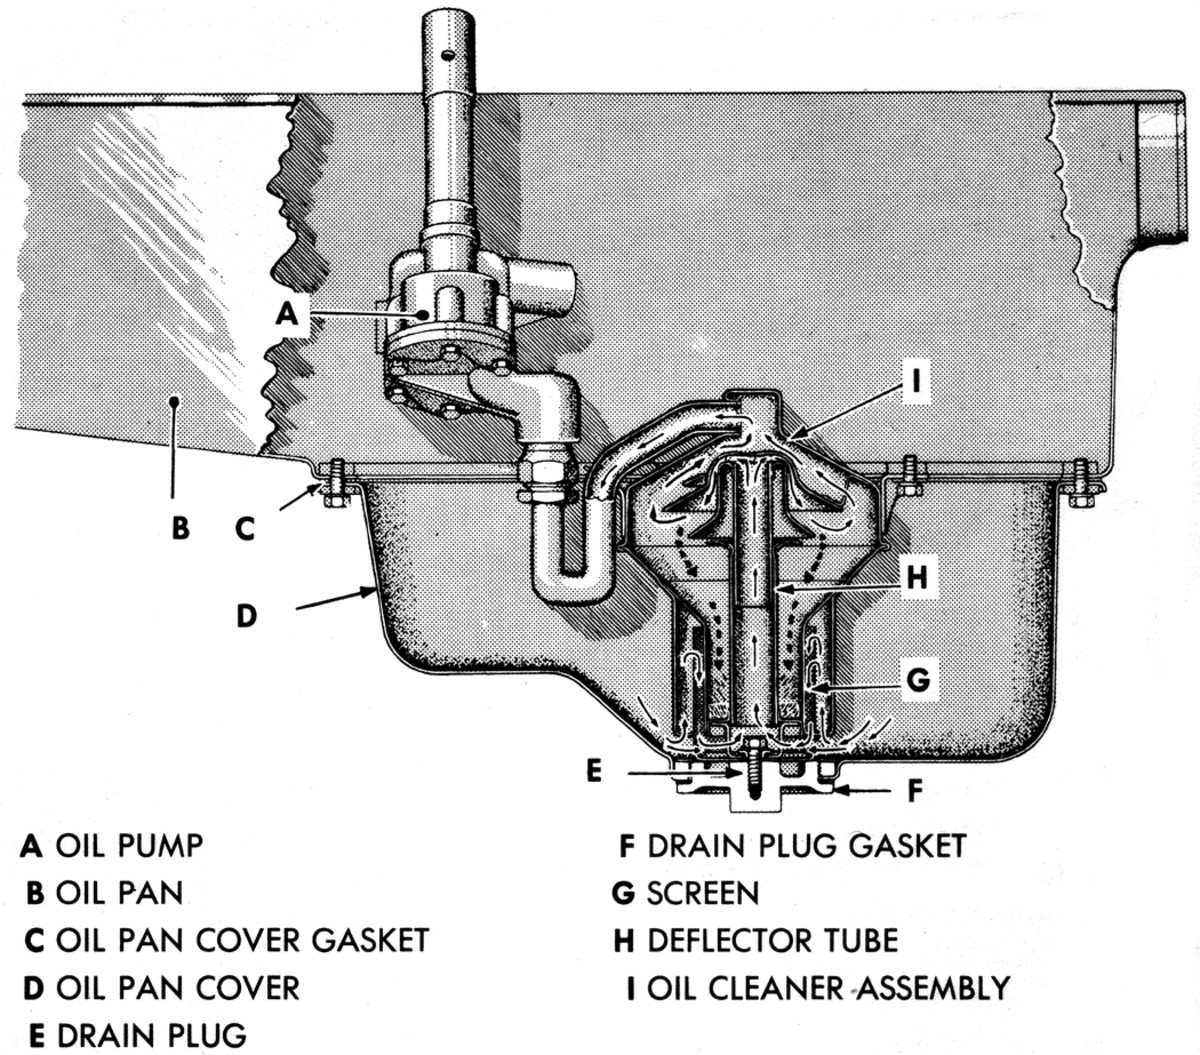 GMC 270 engine as used in CCKW type trucks, showing in-pan oil filter screen, and oil circulation.